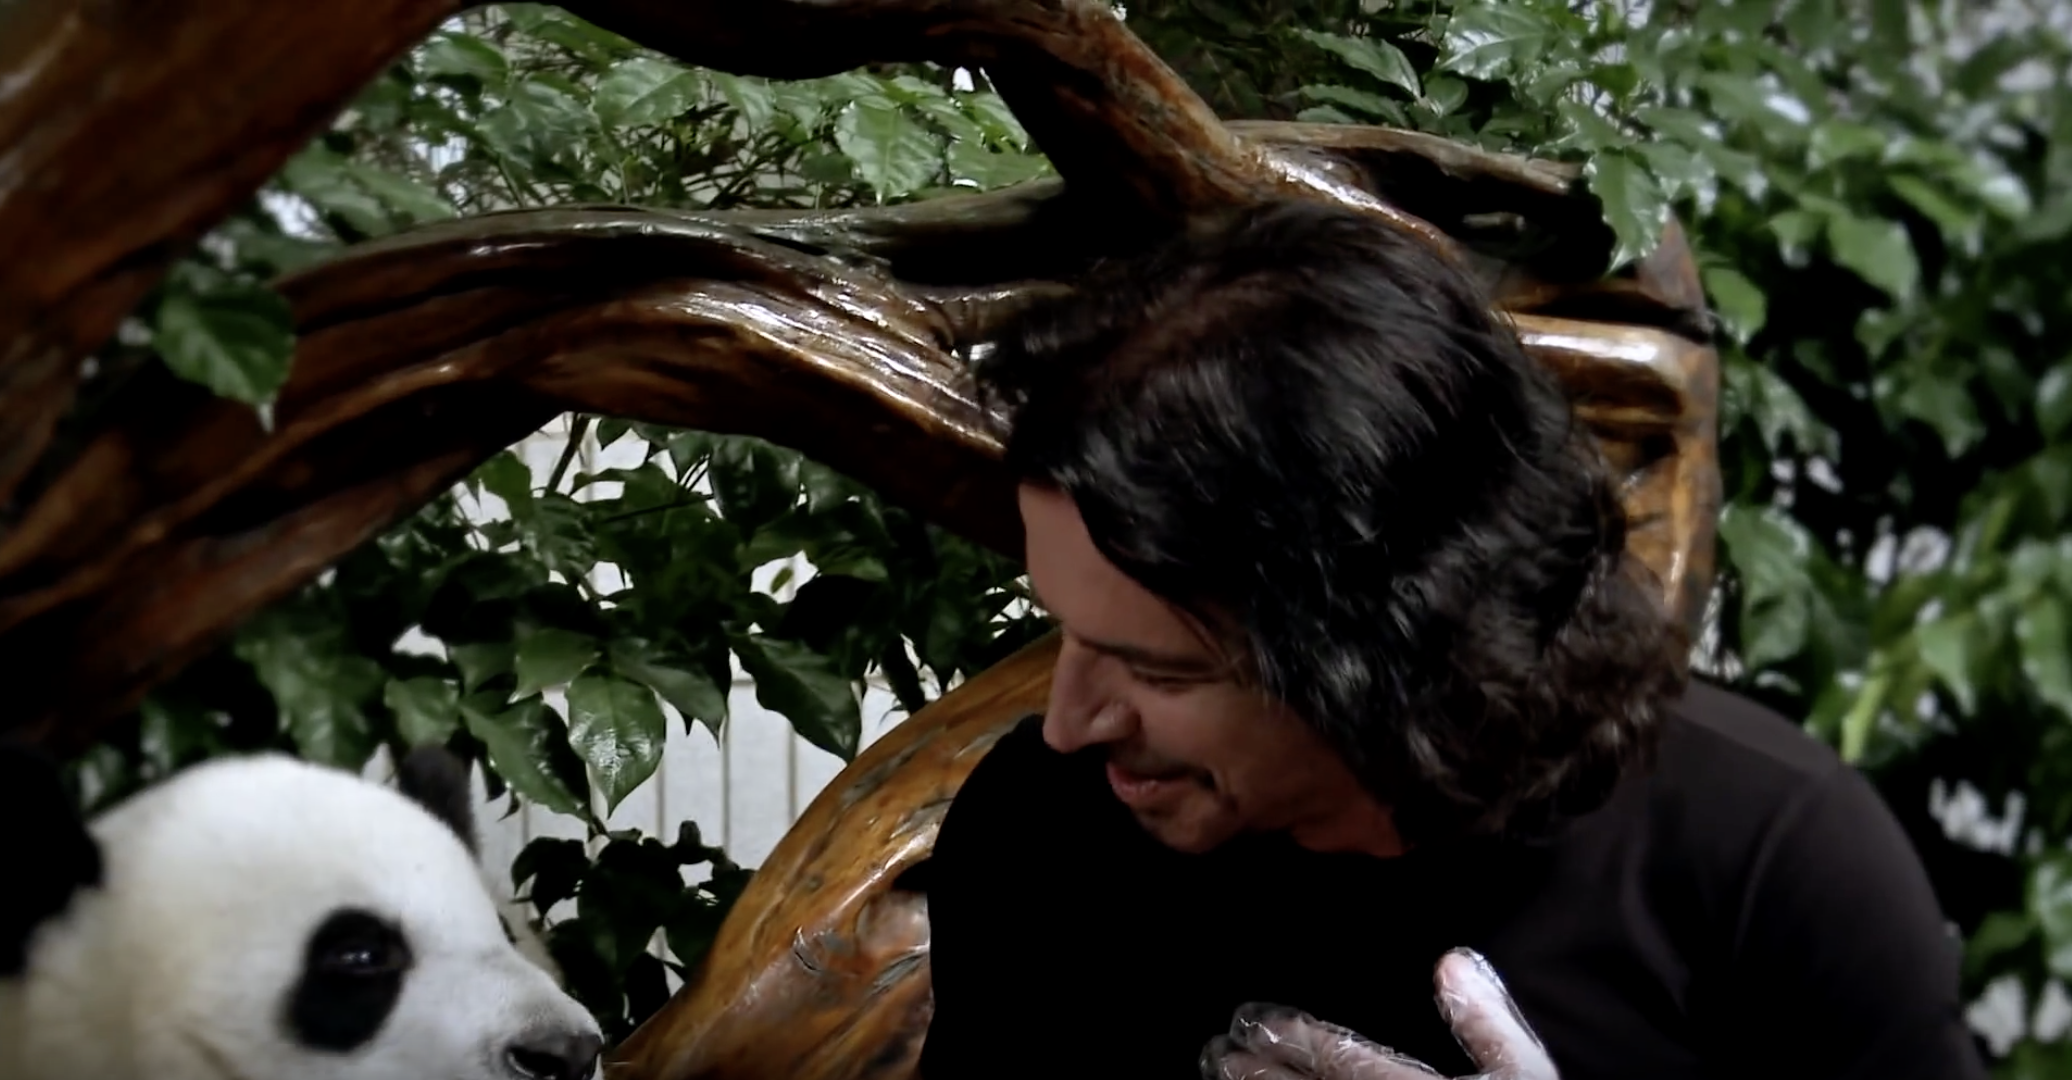 National Geographic interviews Yanni